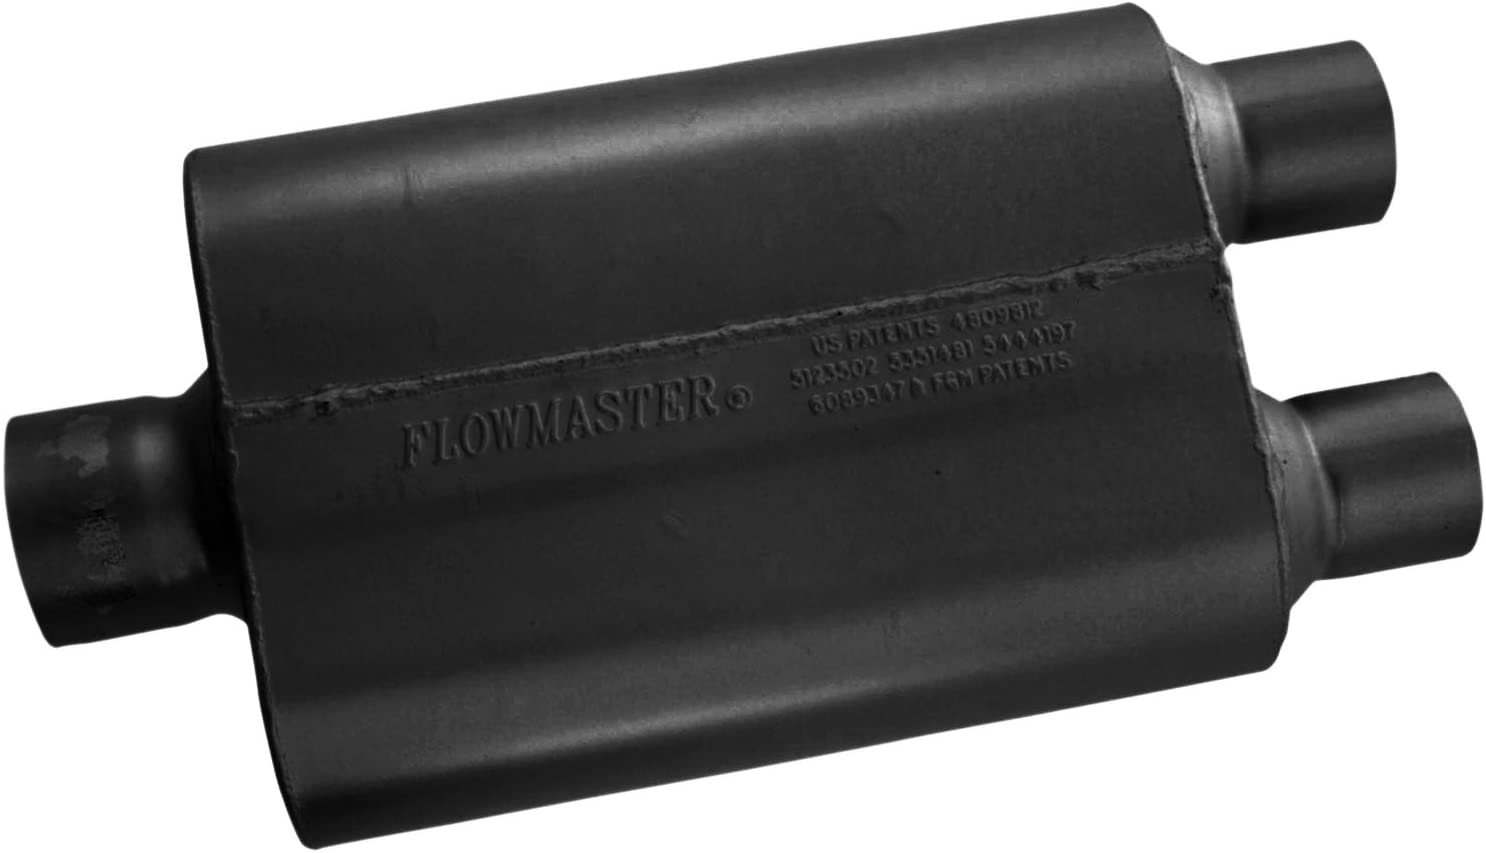 "Flowmaster 430402 Universal Muffler 40 Series 3/"" Center In//2.5/"" DUAL Out"